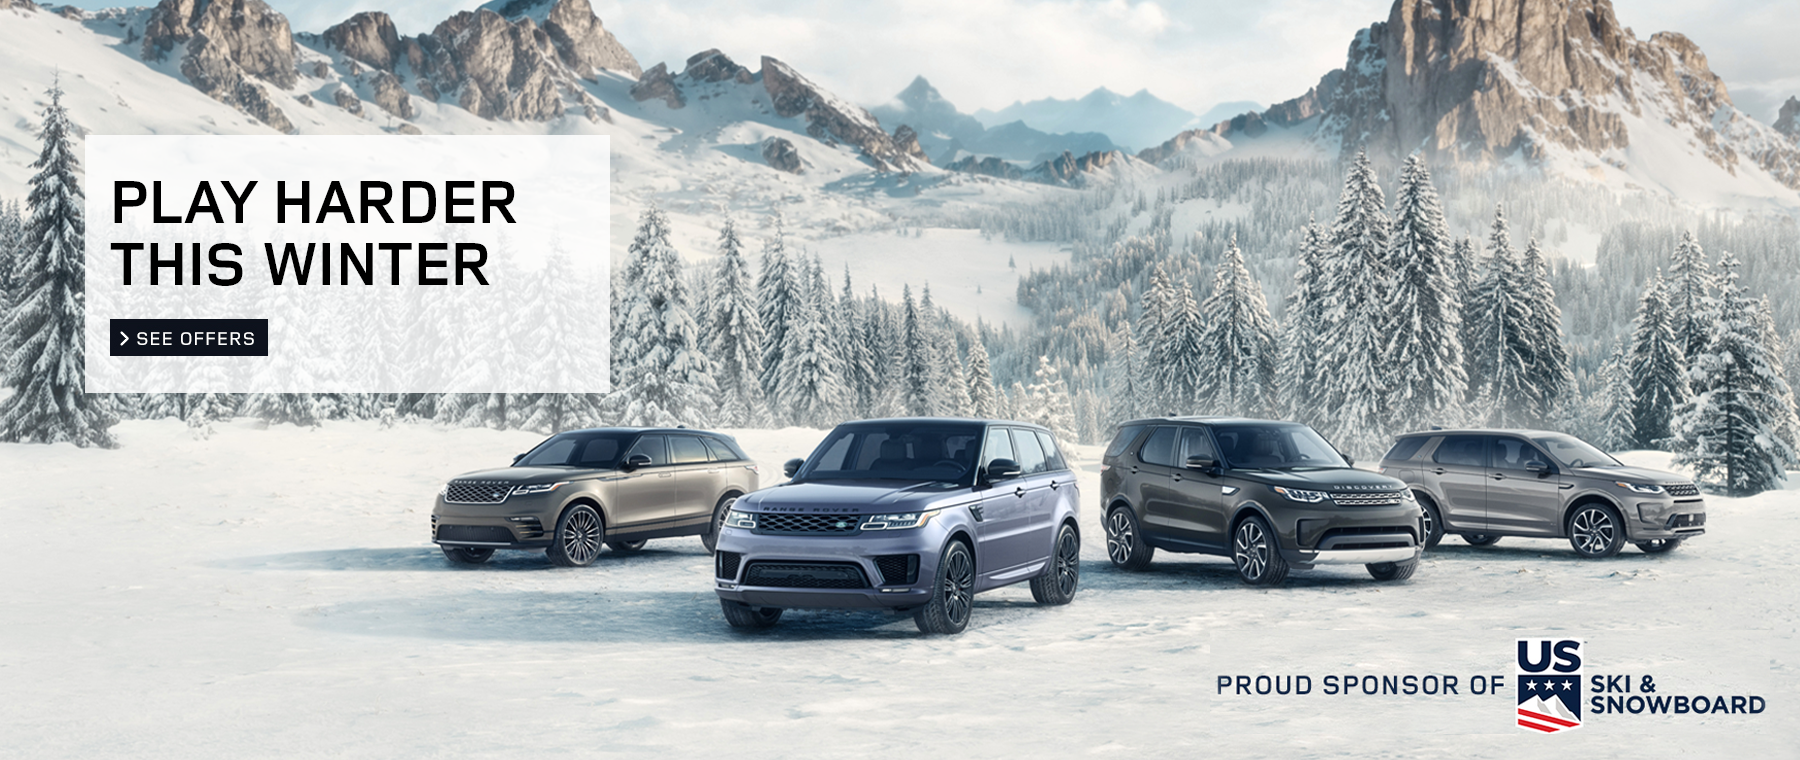 Land Rover 2020 play harder this winter winter campaign